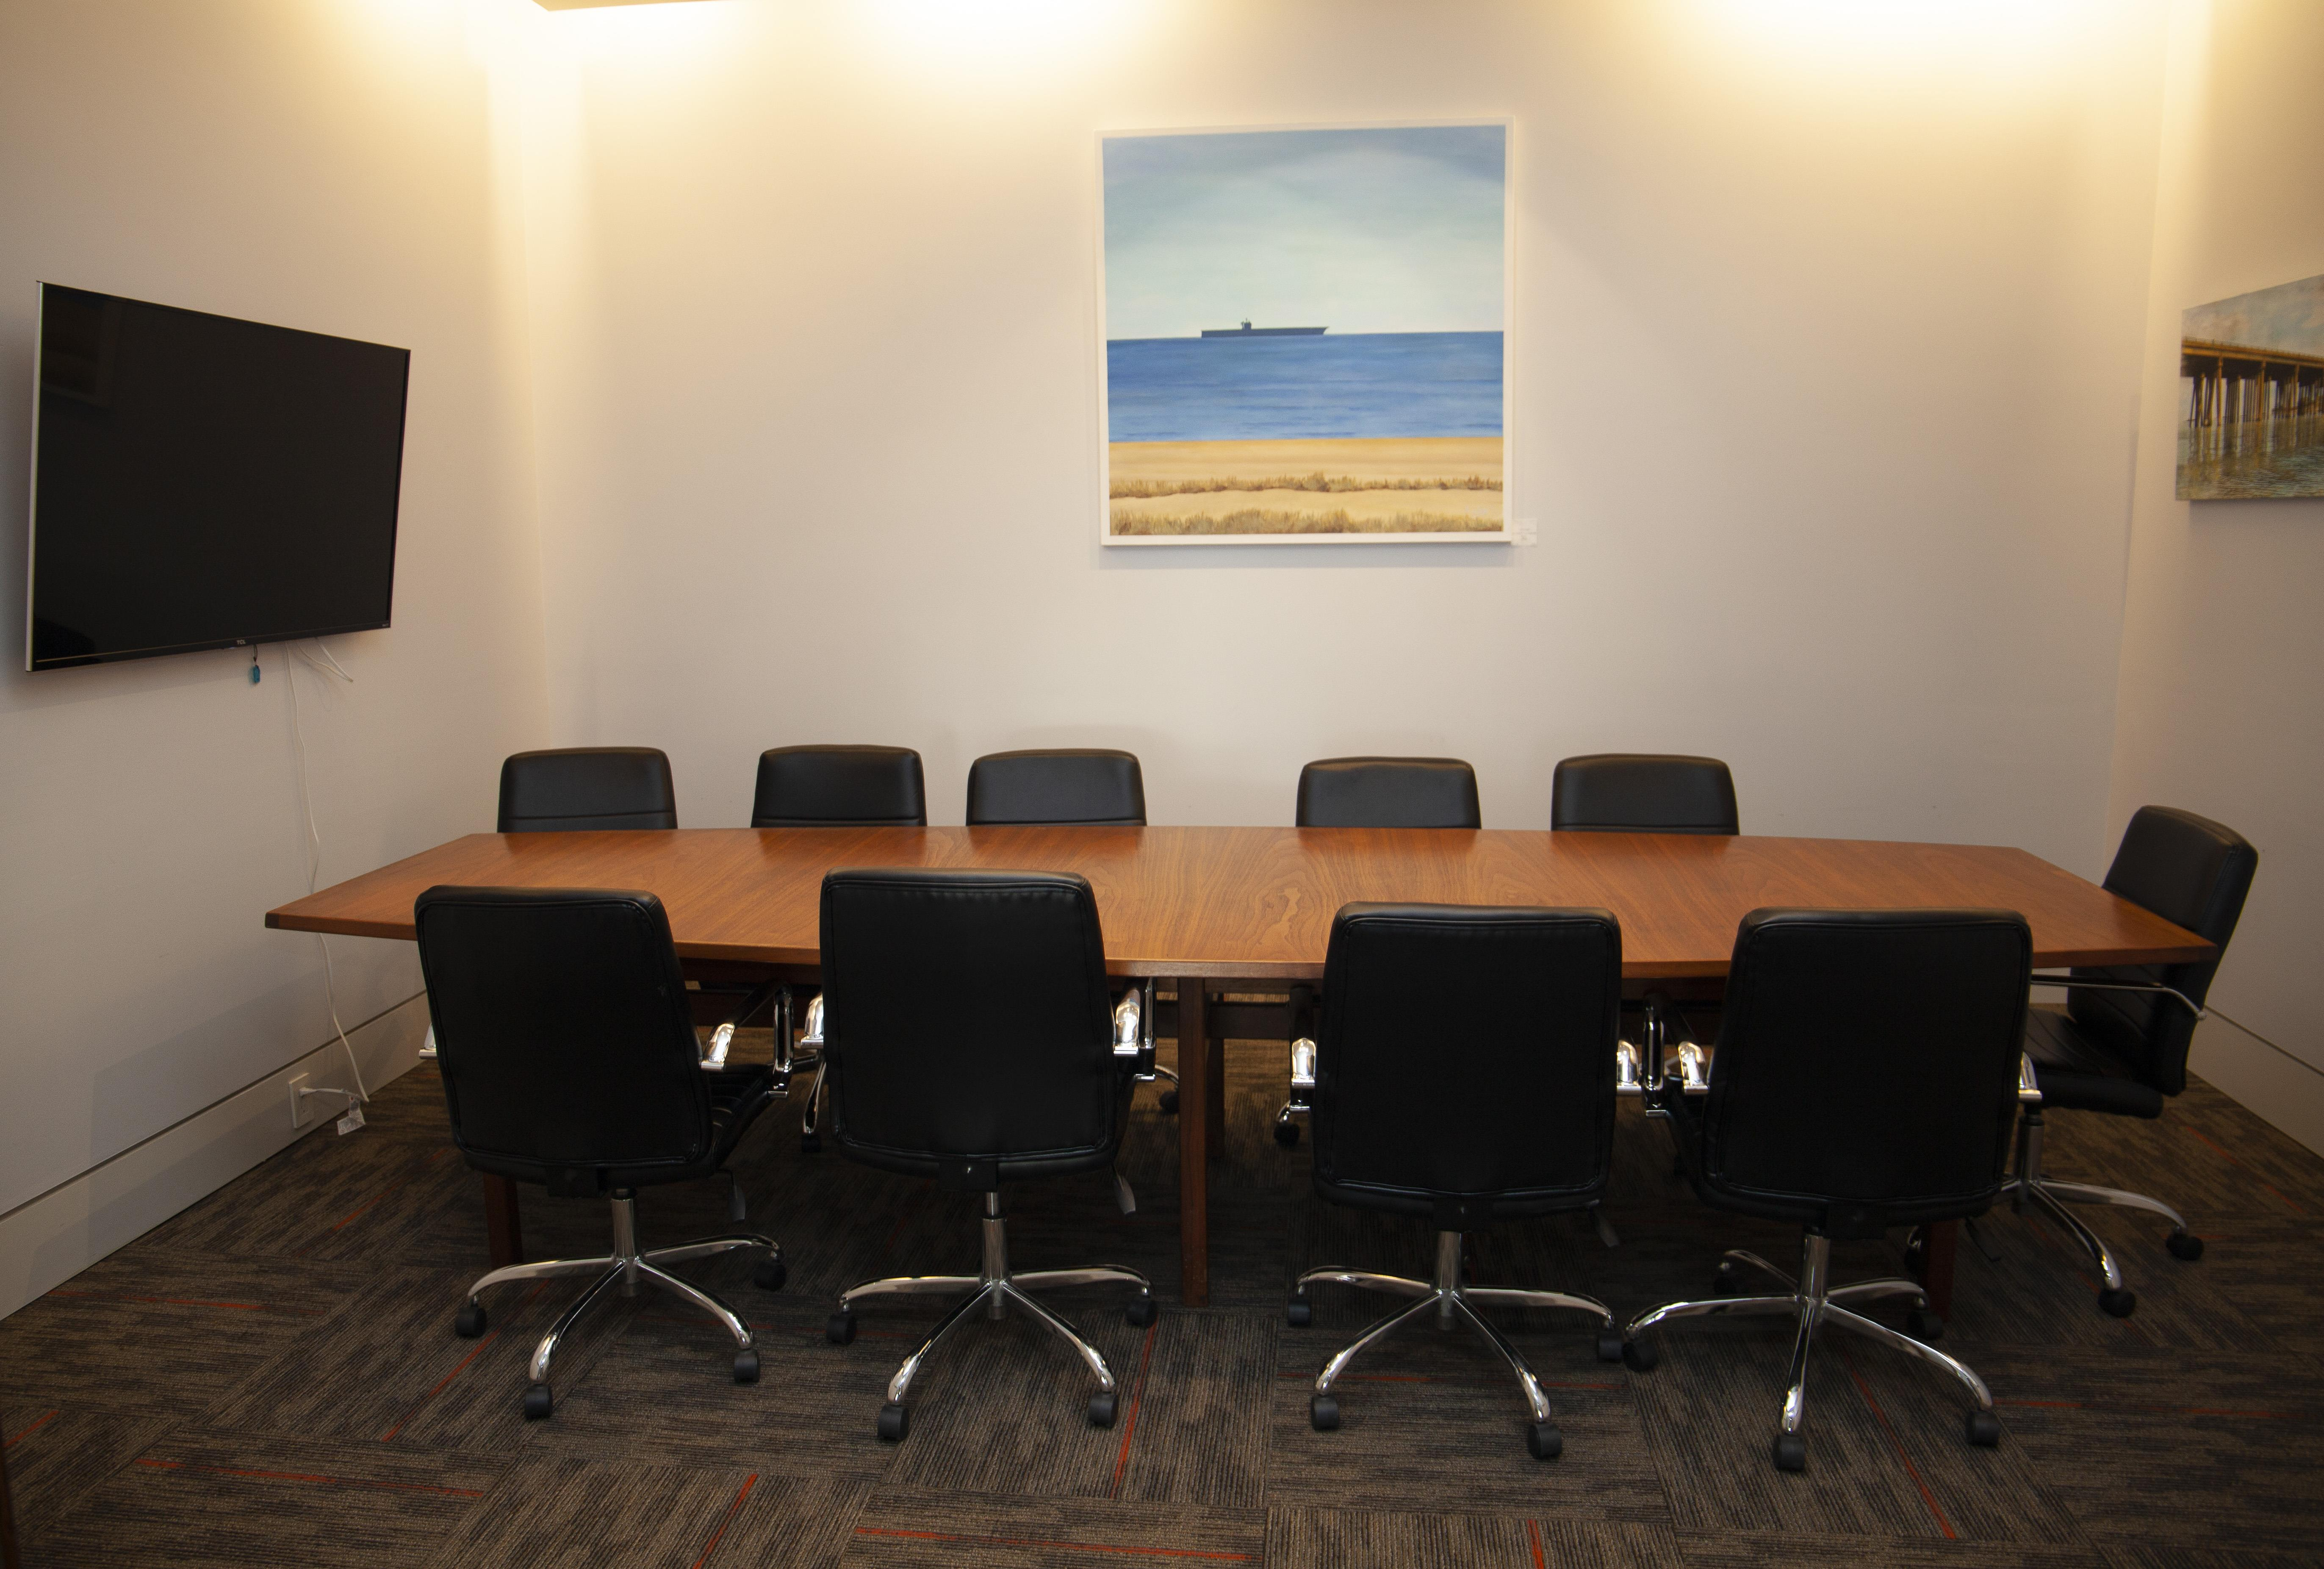 1701 - Virginia Beach Coworking, Meeting & Event Space - Jamestown Room (Conference Room)